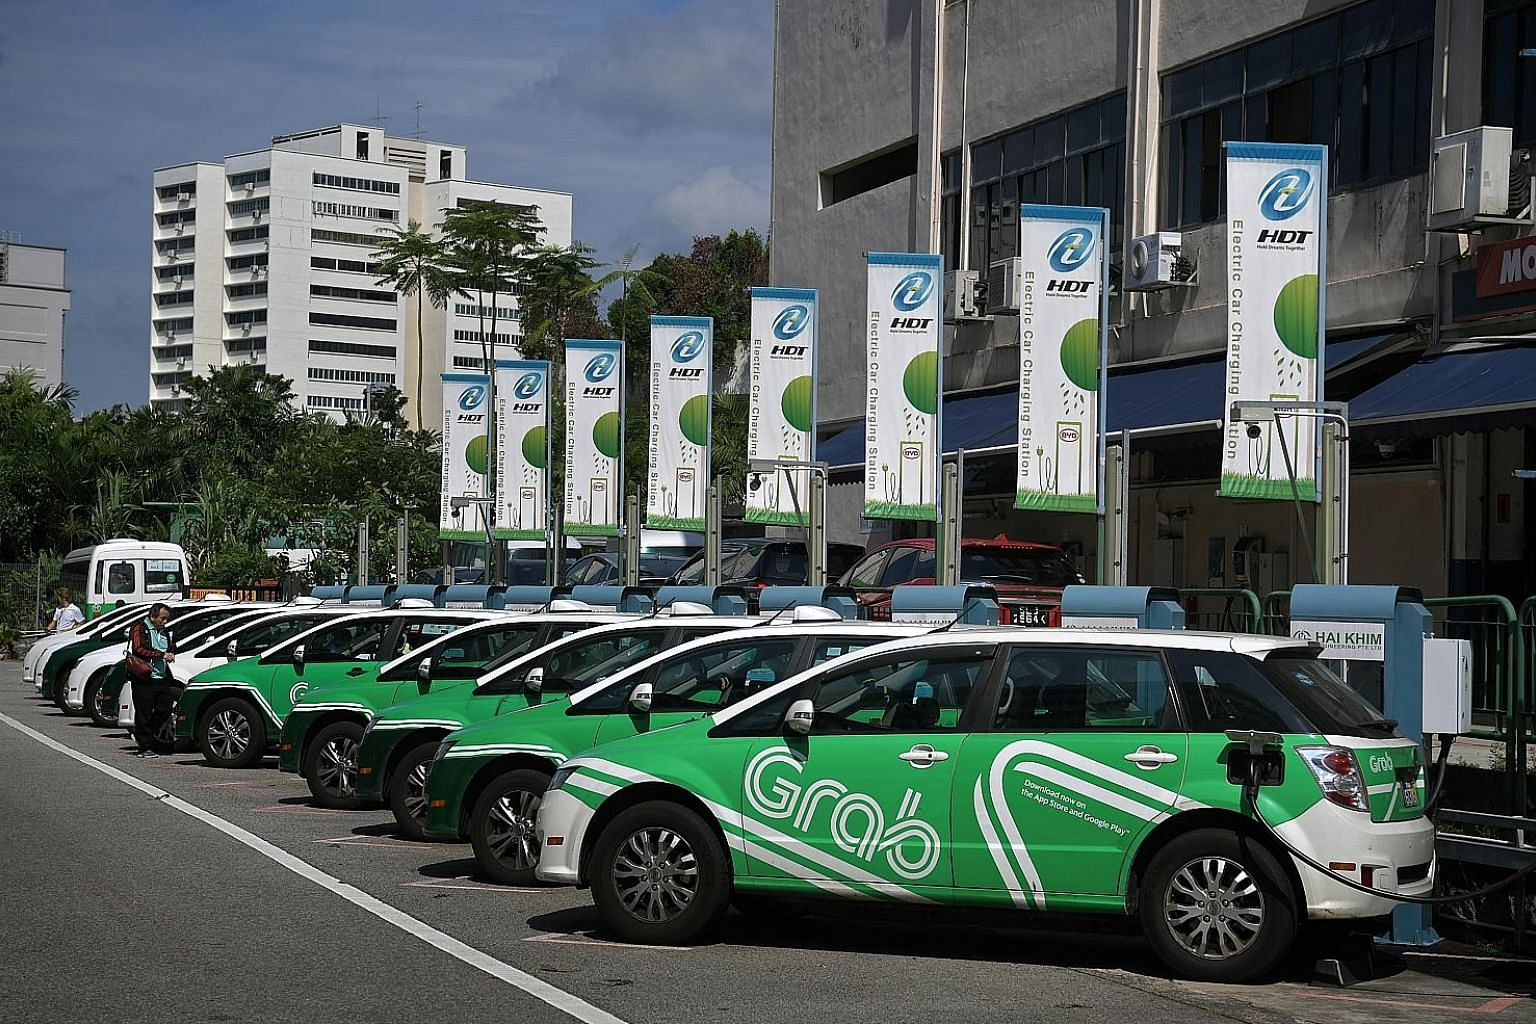 Grab plans to offer by next month hotel bookings, ticket purchasing, video streaming and integrated transport planning services in Singapore. Its existing offerings started with ride hailing and now include food delivery and financial services.